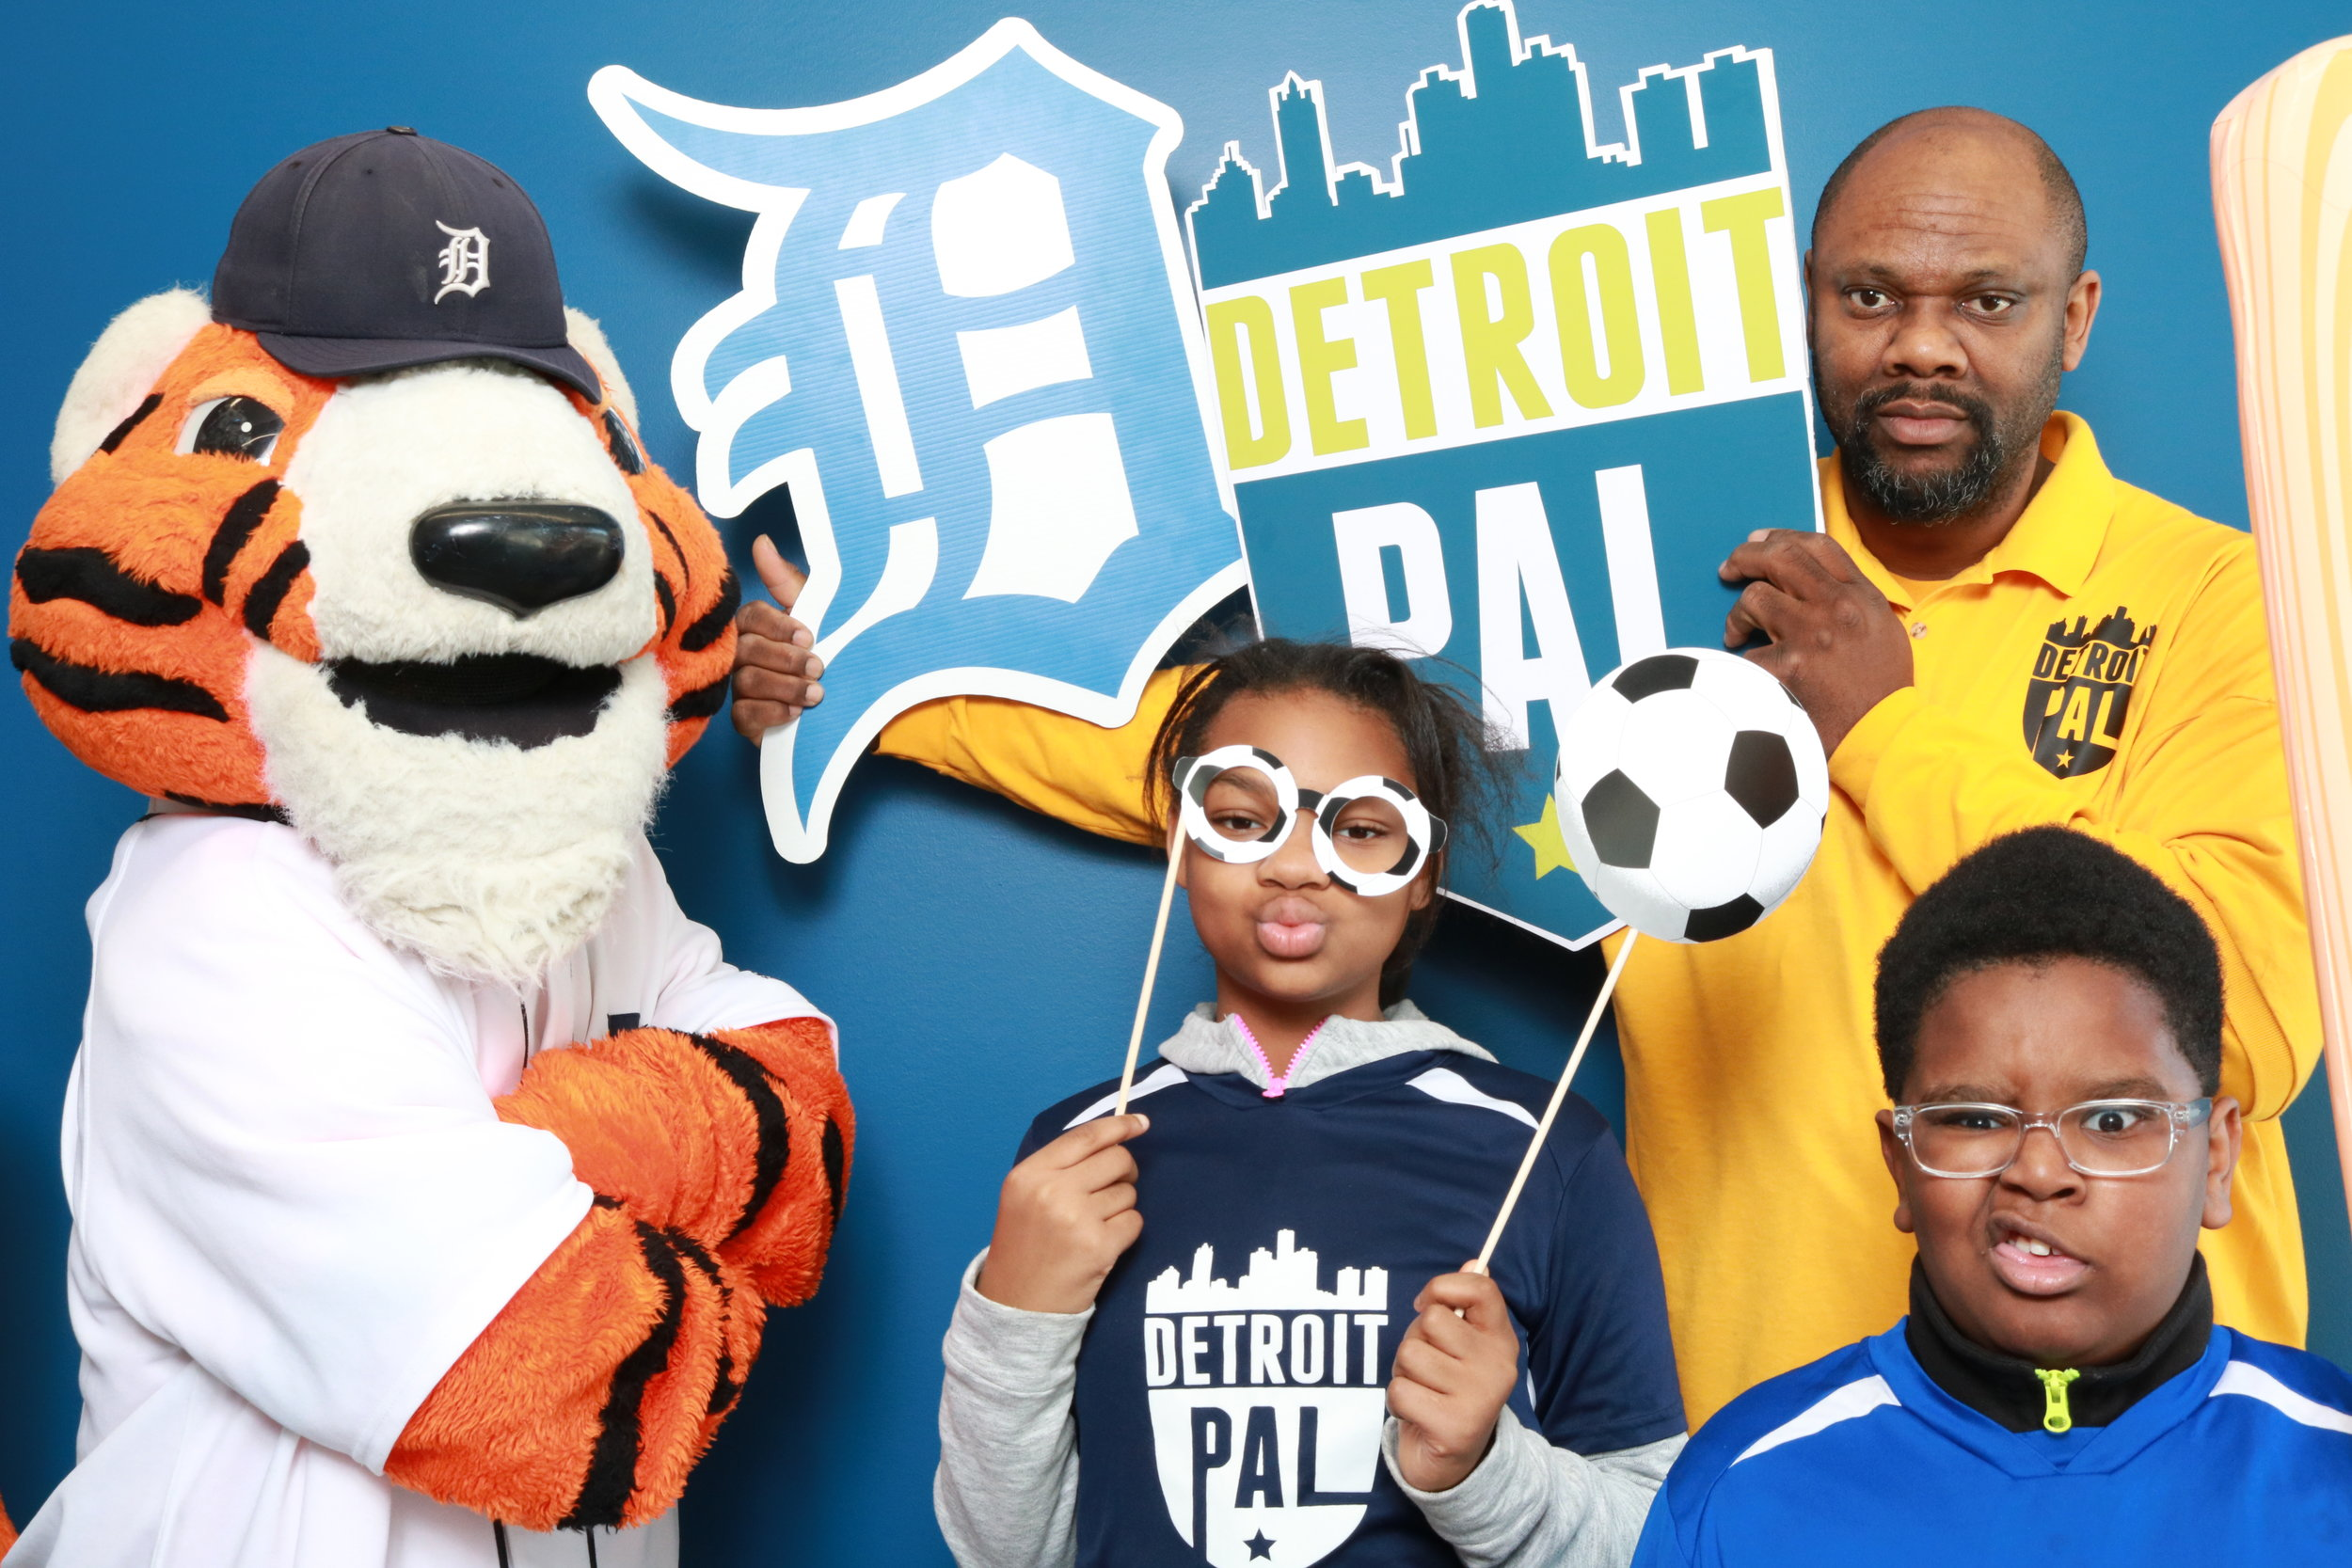 Detroit PAL Grand Opening Weekend